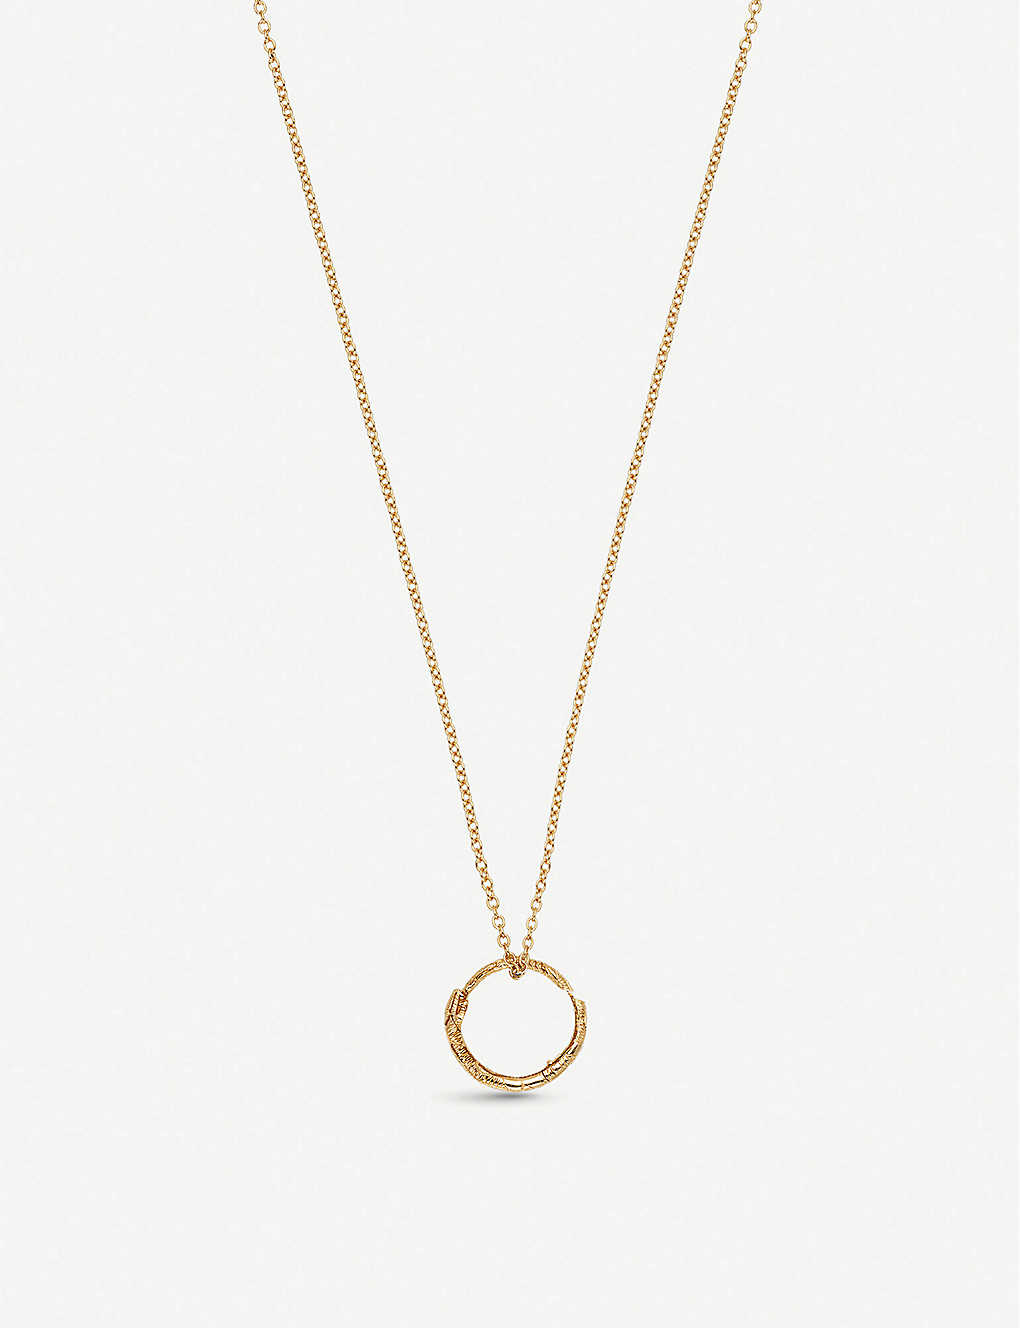 GUCCI: Le Marché des Merveilles 18ct yellow-gold necklace